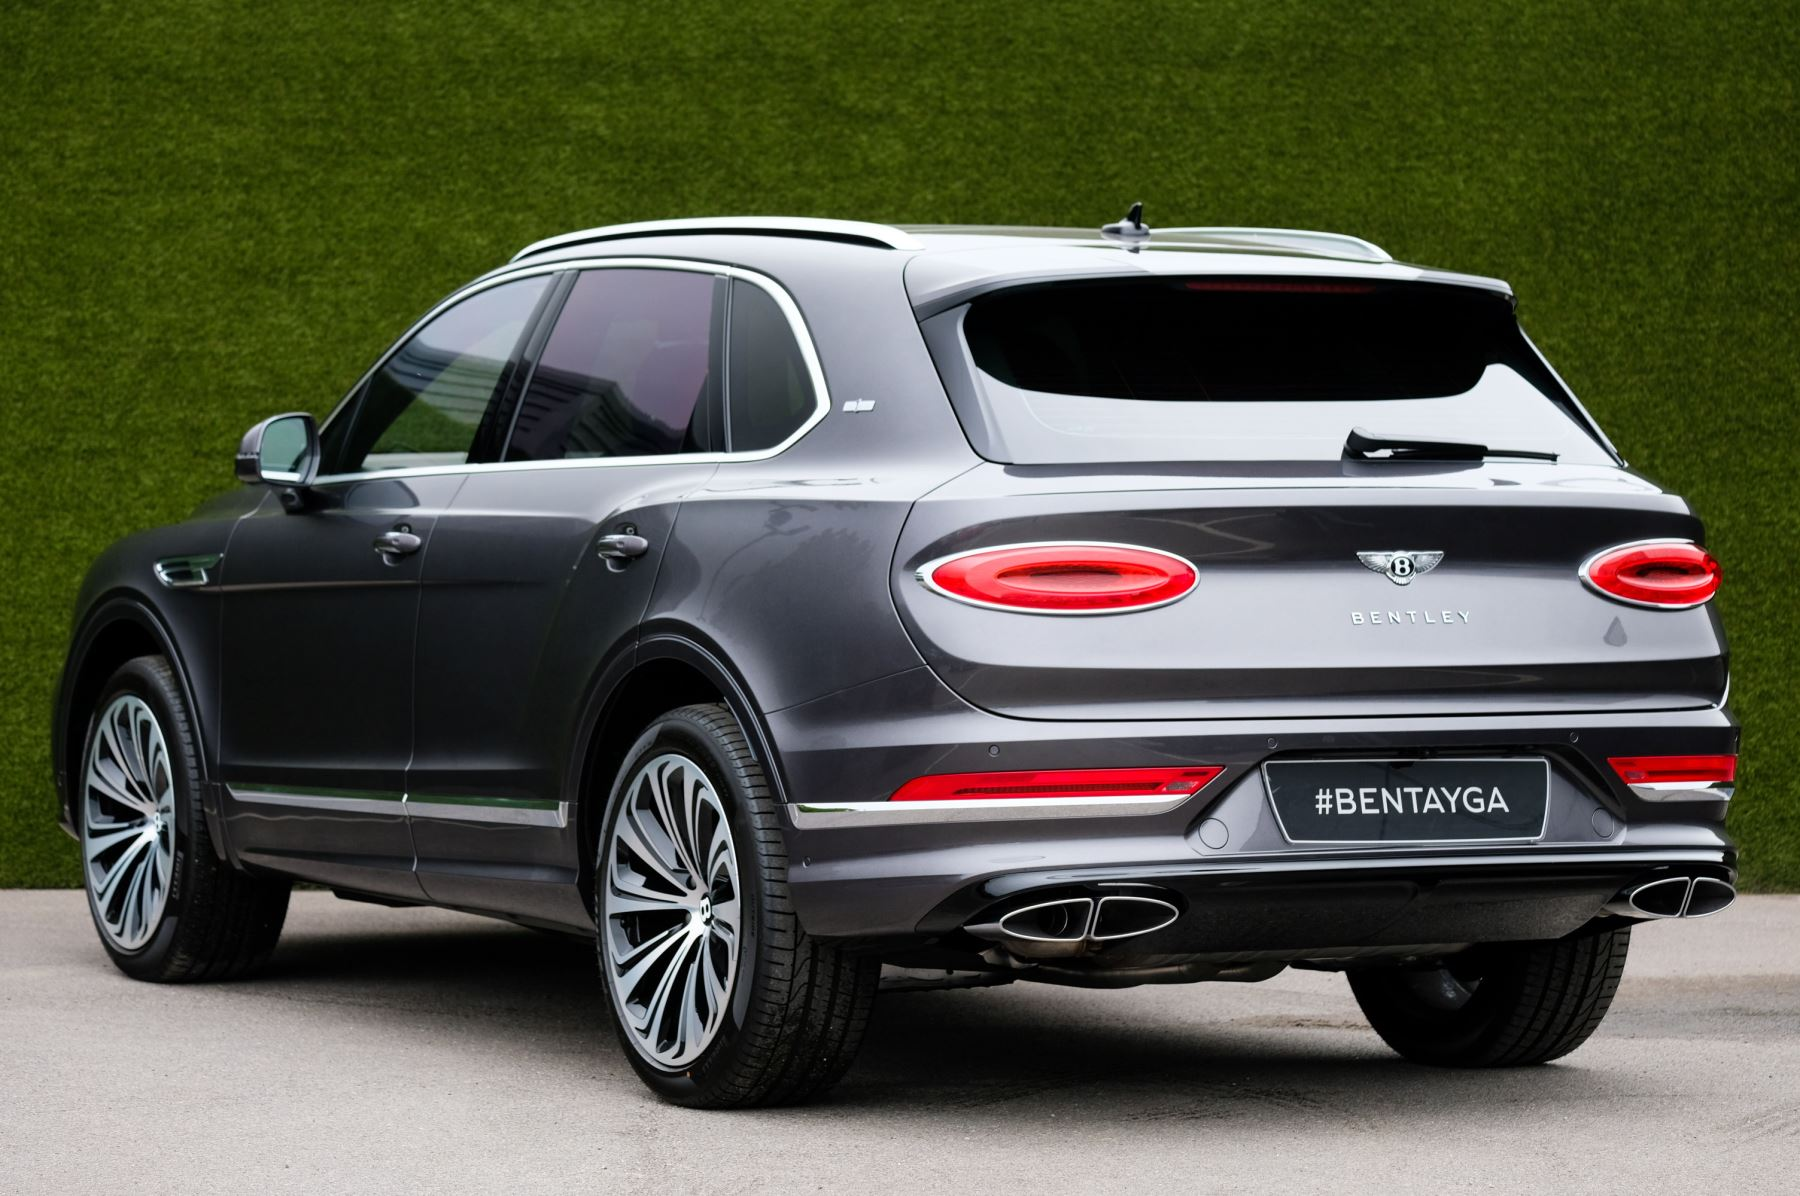 Bentley Bentayga 4.0 V8 5dr [4 Seat] - First Edition - All Terrain Specification image 5